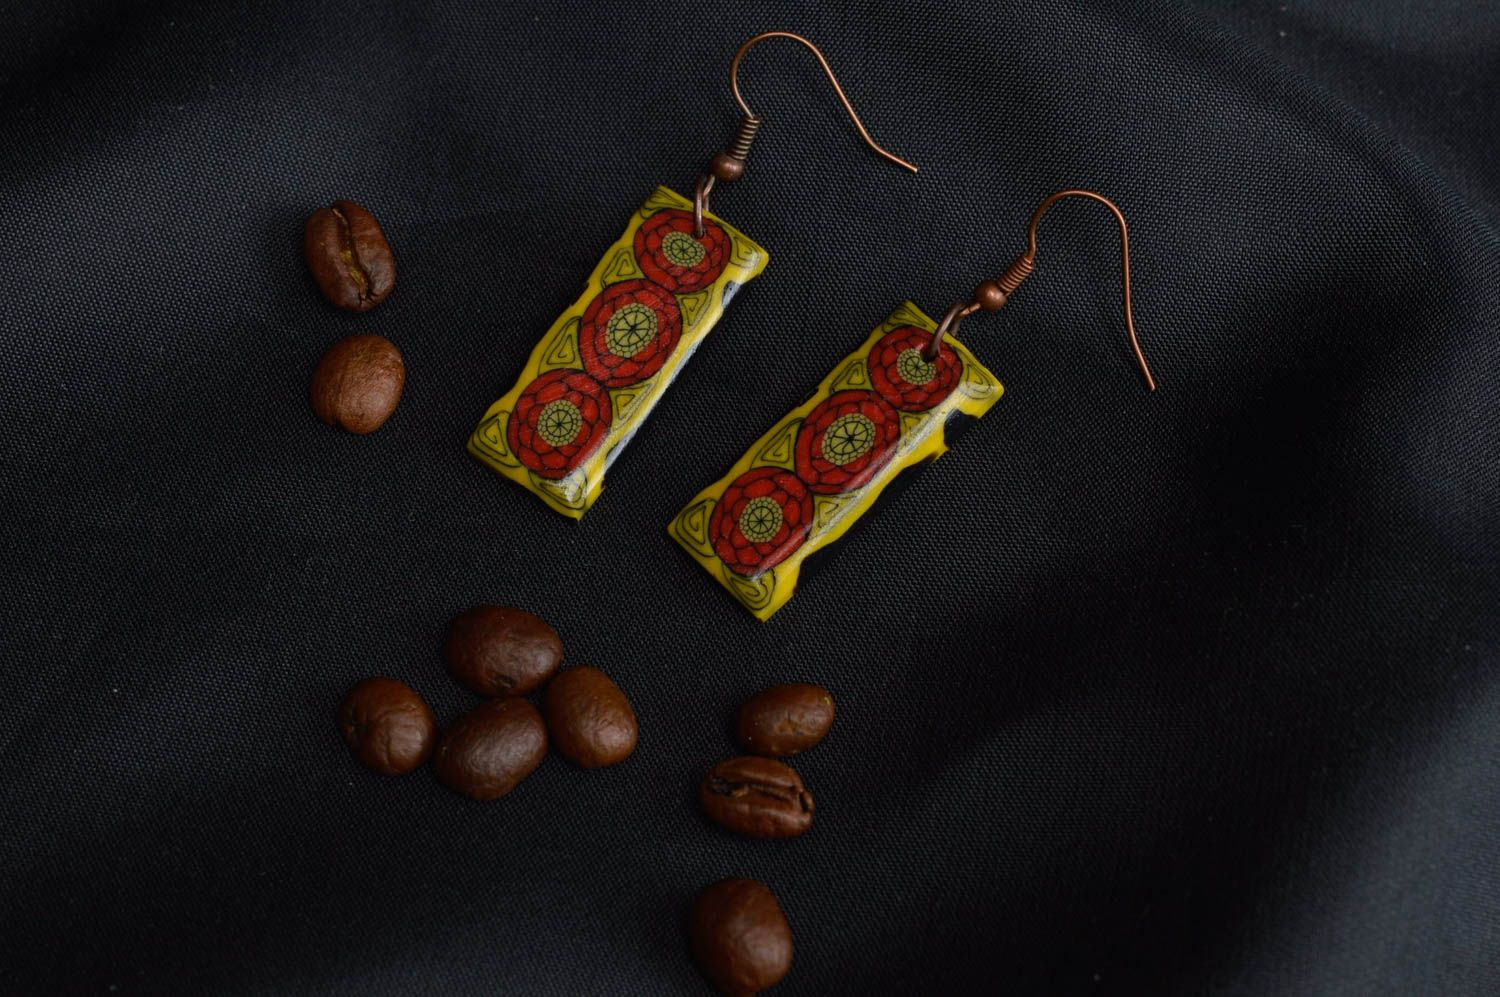 Polymer clay earrings handmade designer accessory for girls plastic bijouterie photo 1